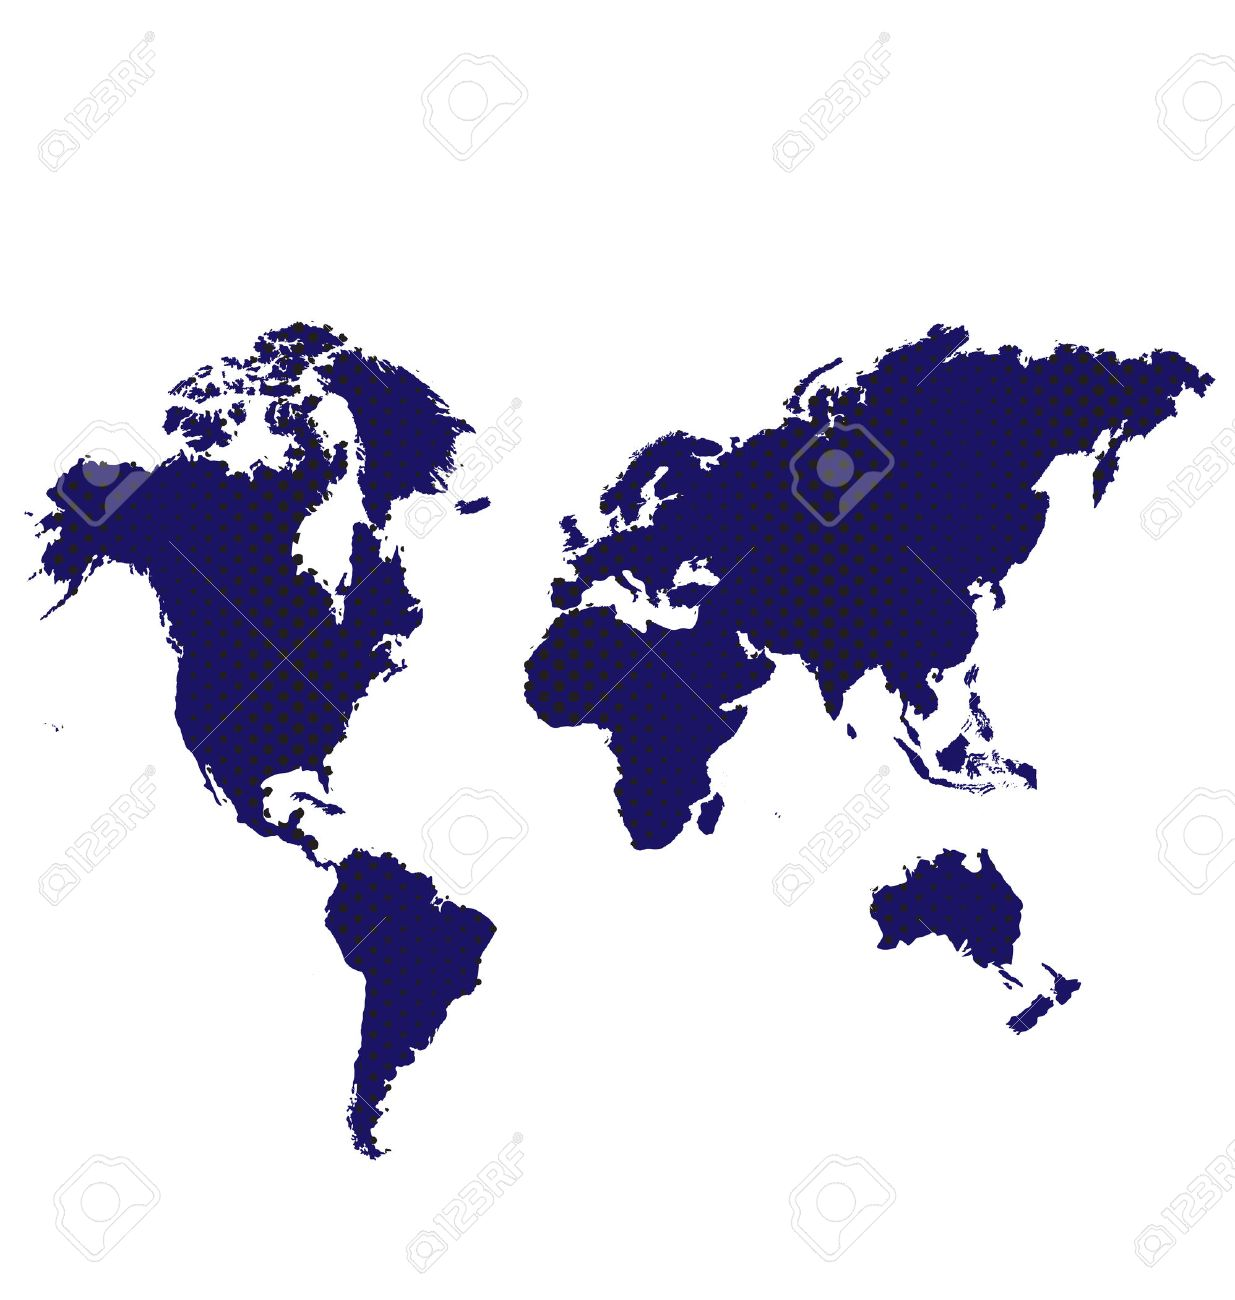 Blue Dark Map World Vector Image Icon Royalty Free Cliparts